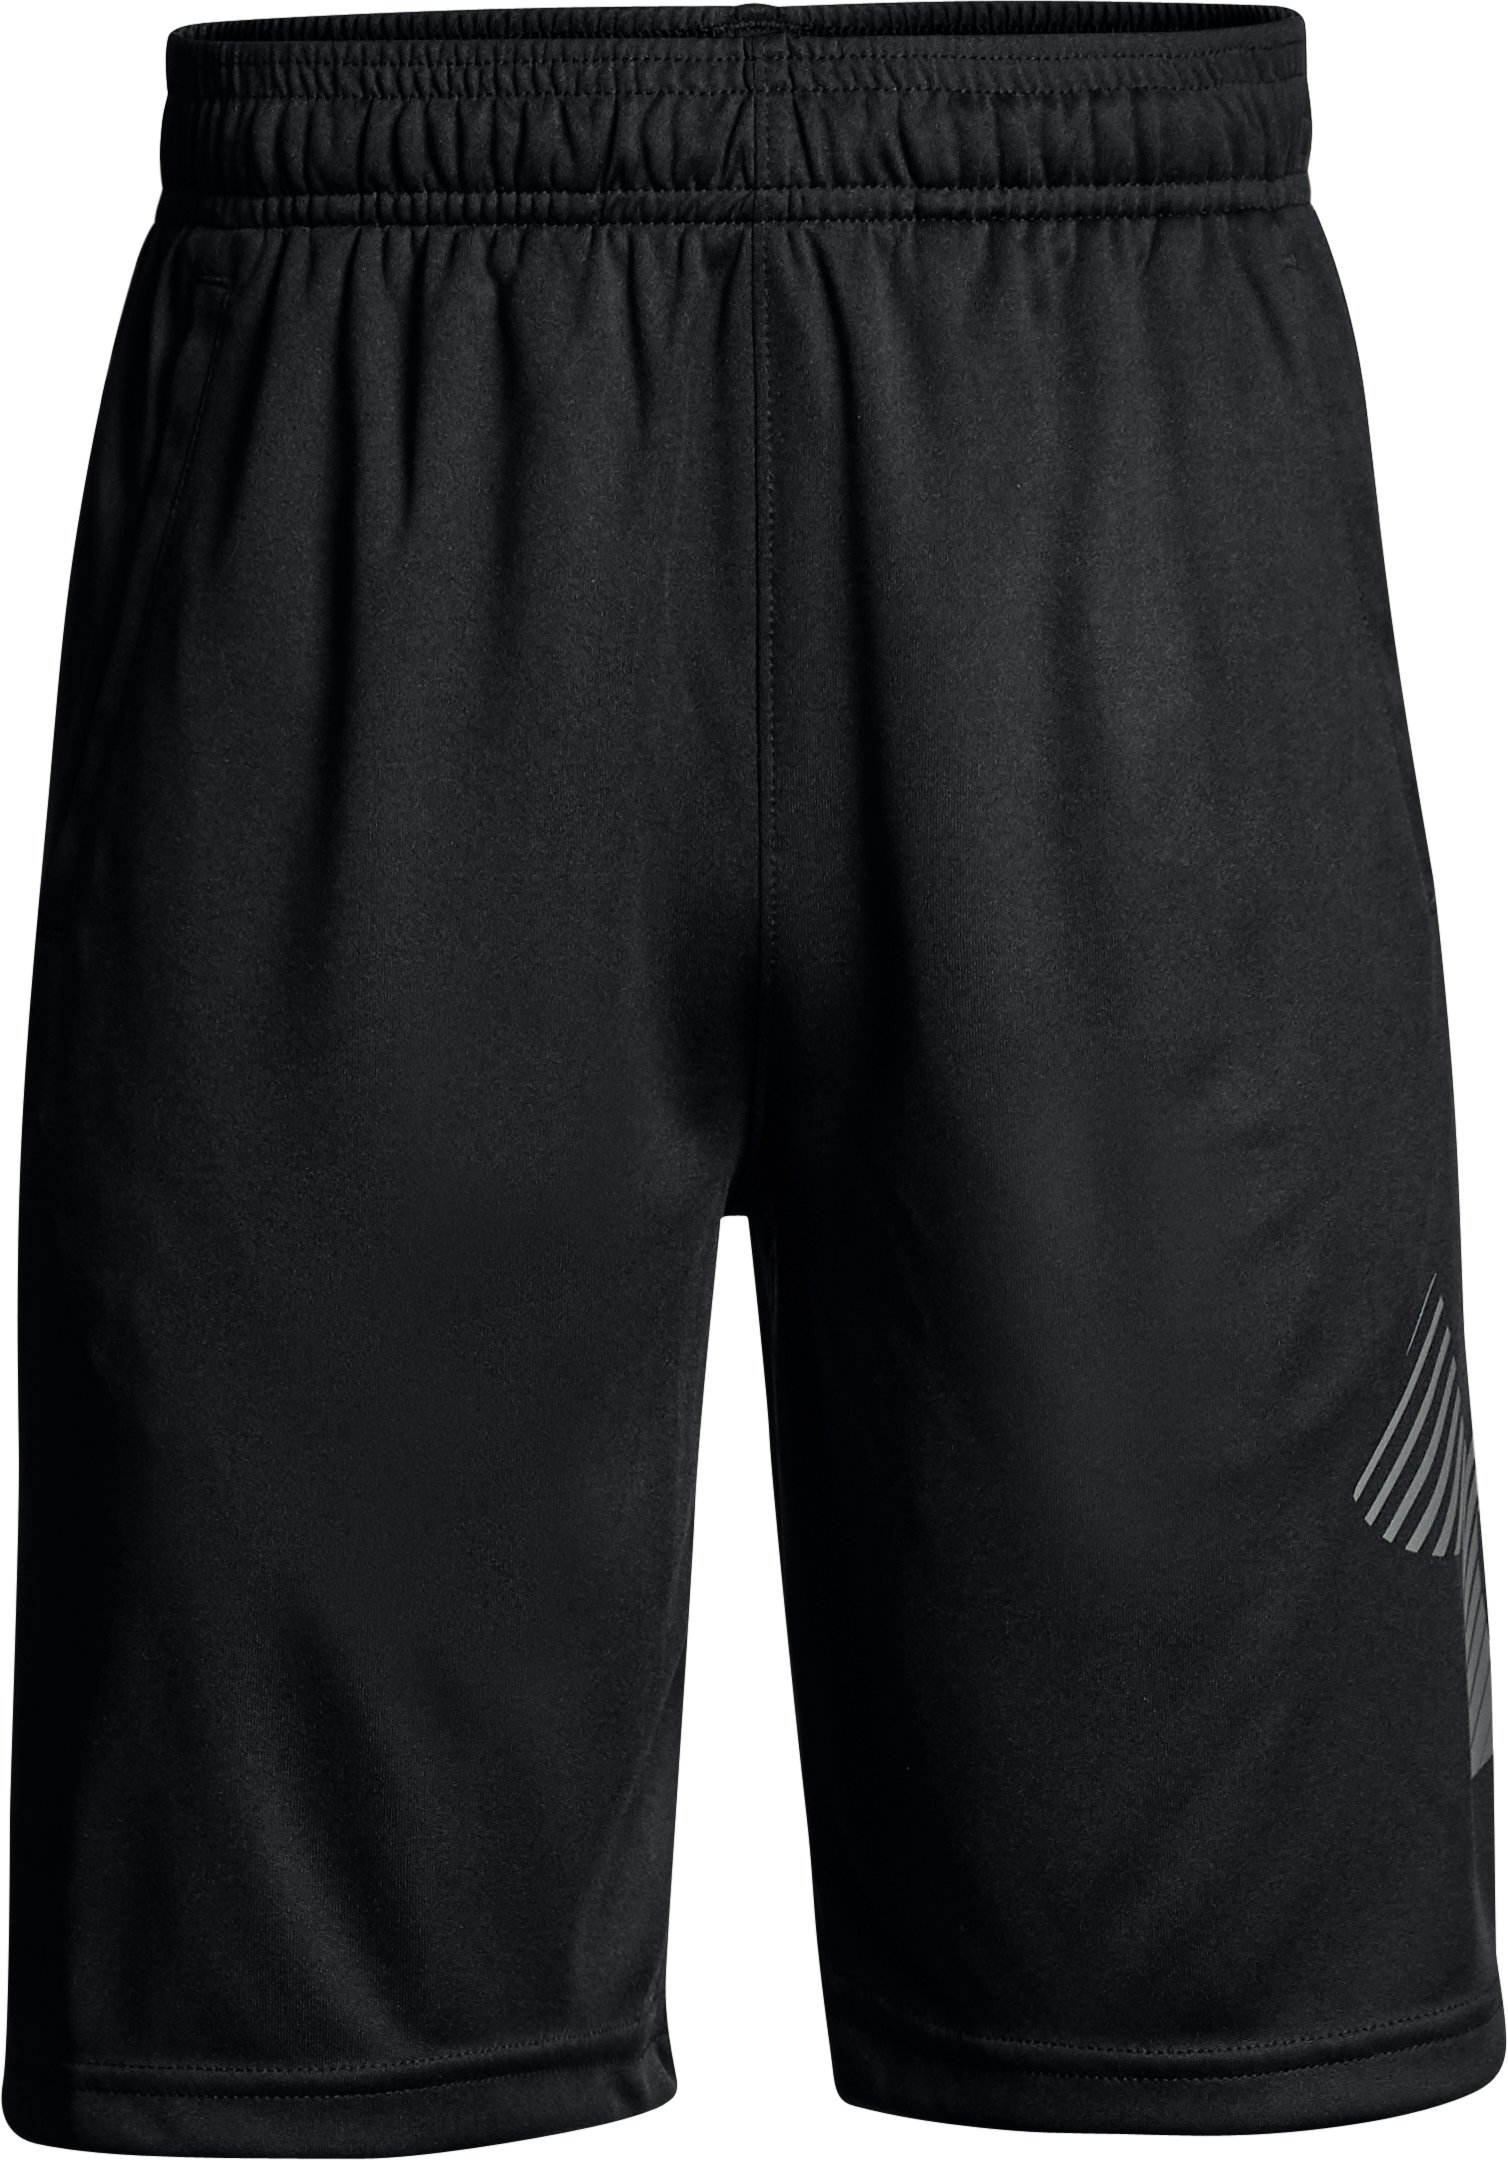 Boys' UA Renegade Solid Shorts, Black ,